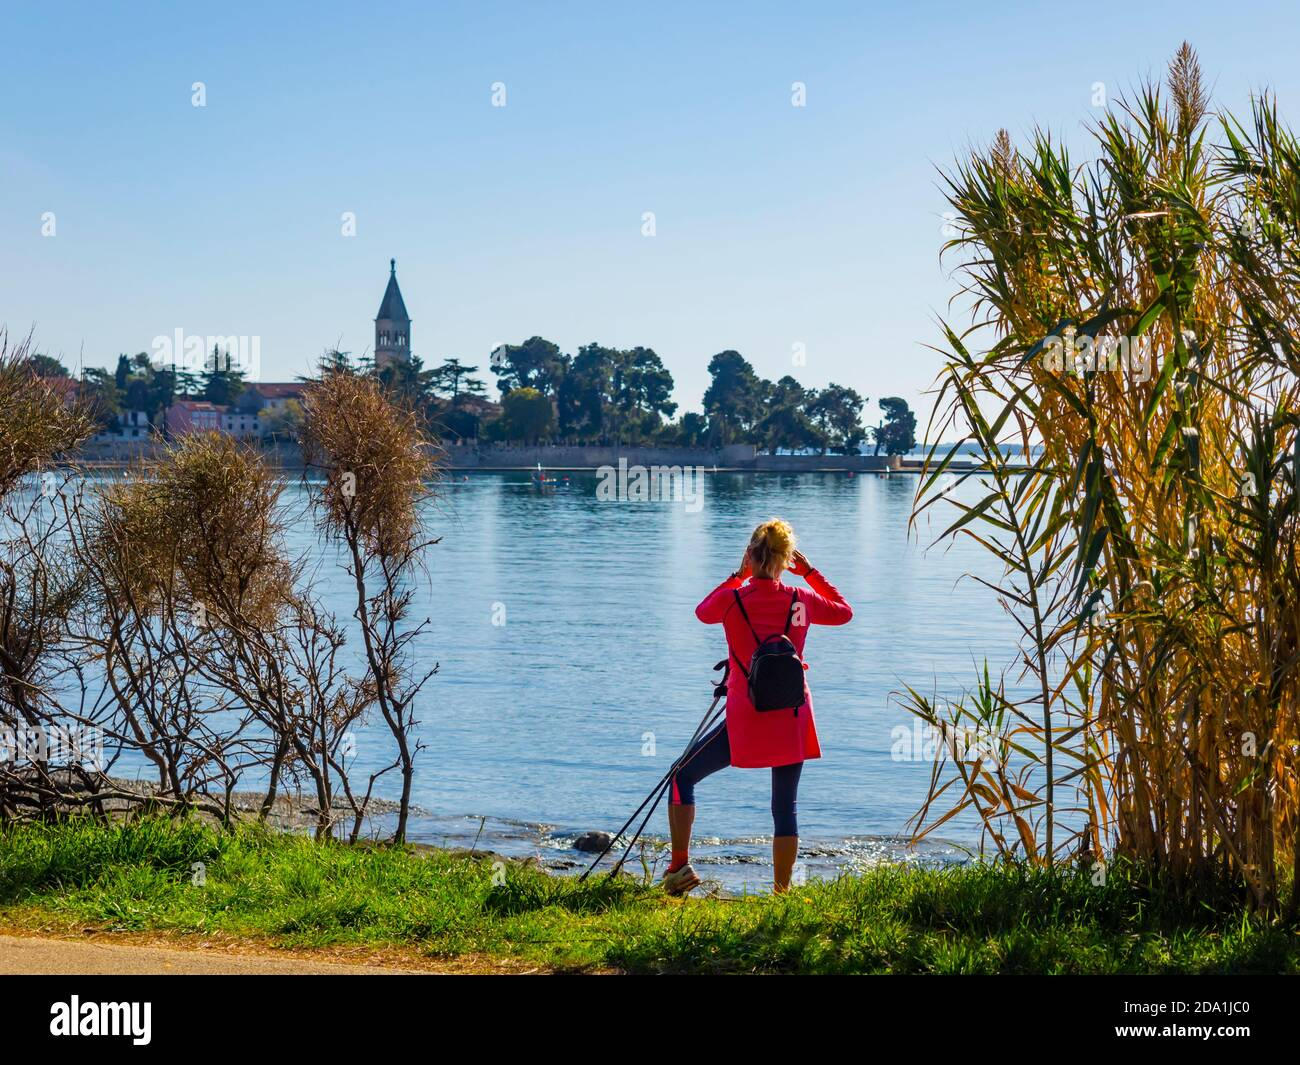 Croatia Novigrad oldtown old town in Istria tourist female young woman in Red clothing walker sticks Stock Photo